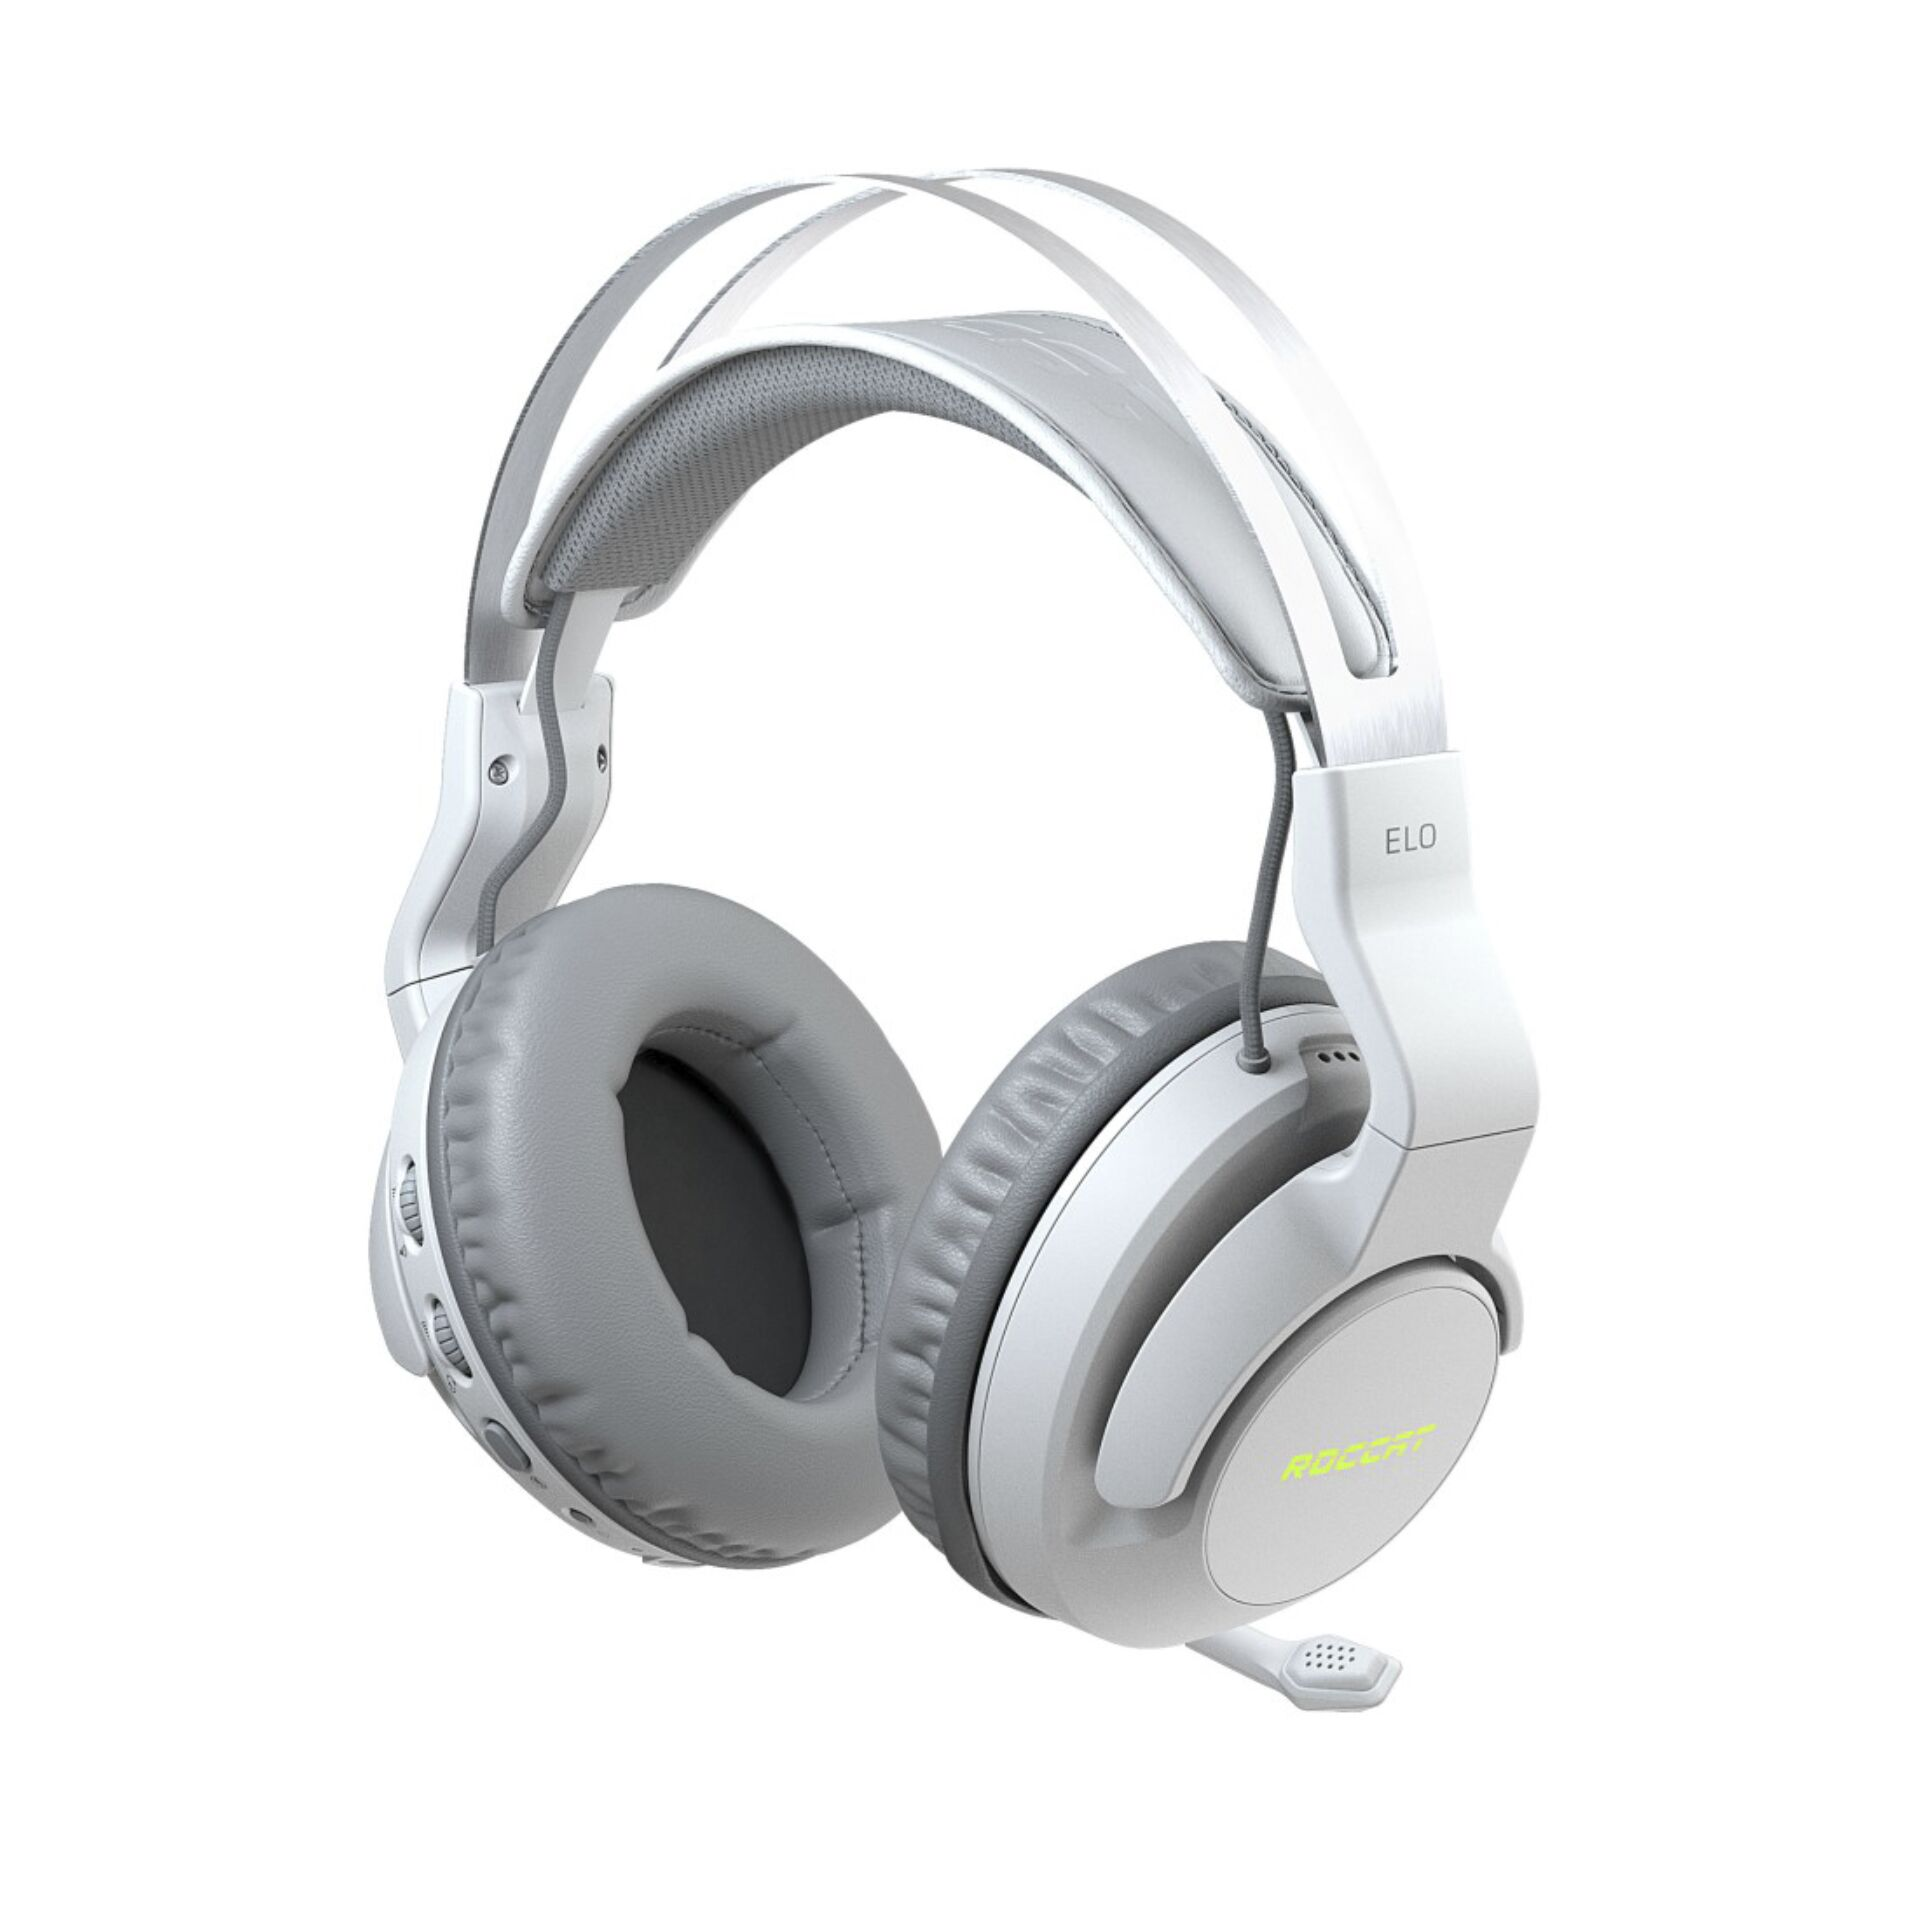 Roccat ELO 7.1 AIR Over-Ear Stereo Gaming Headset white